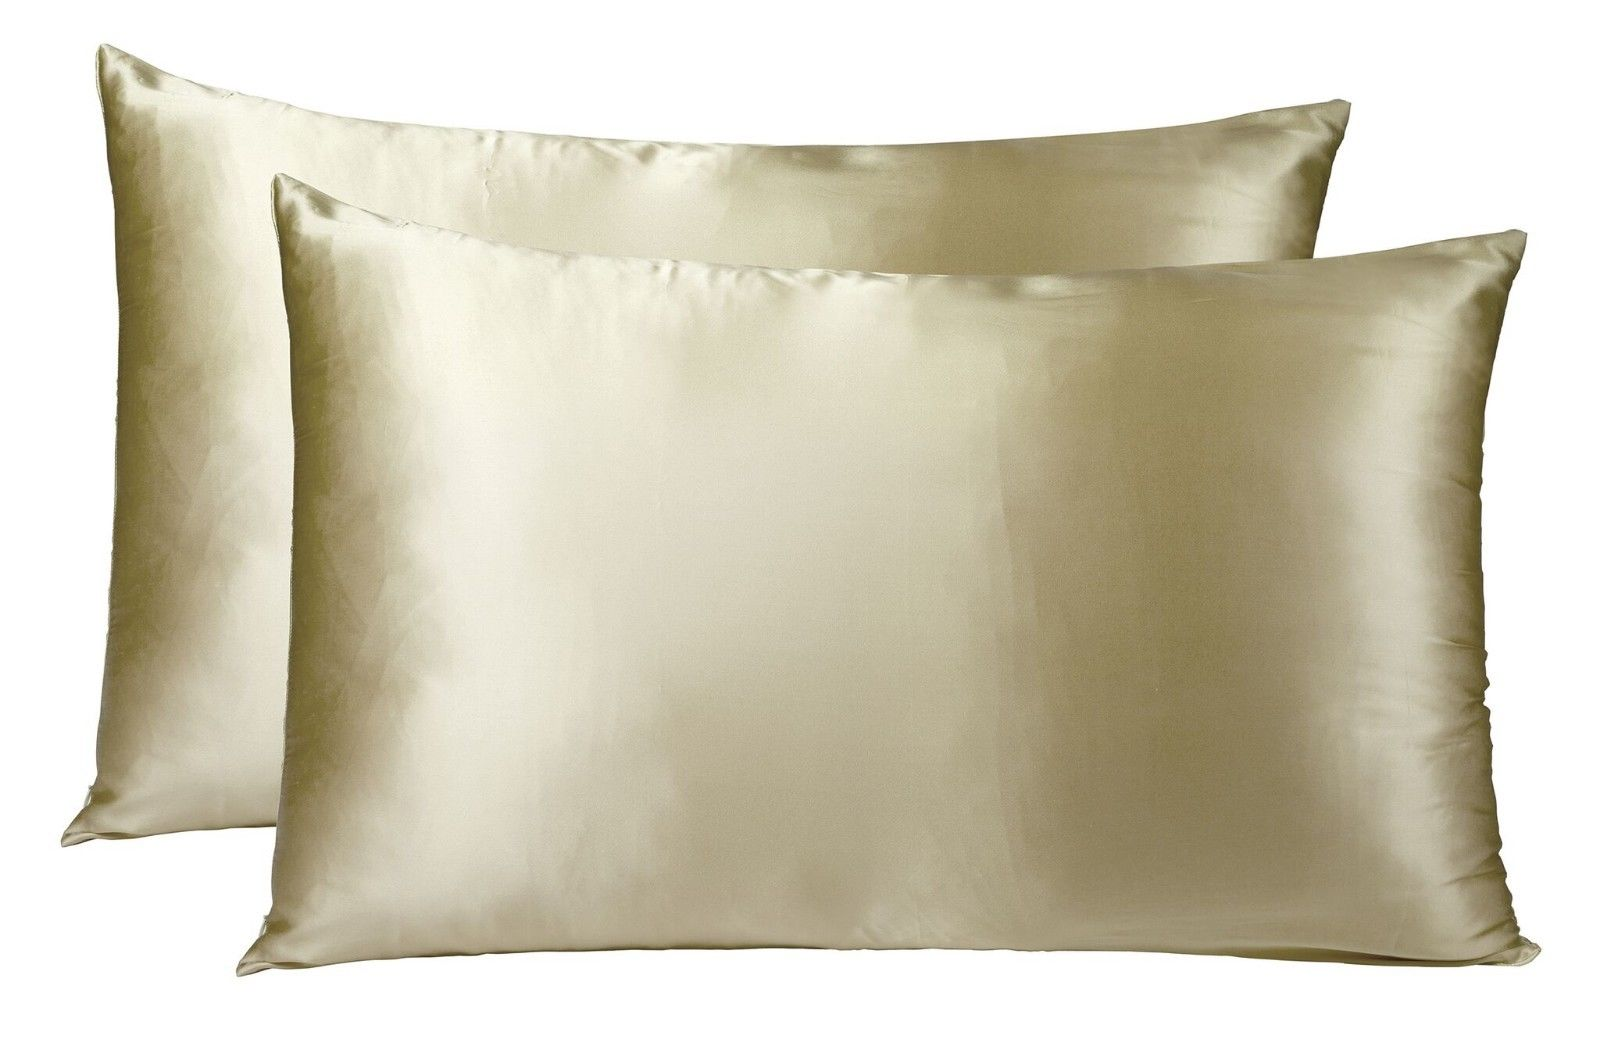 Royal-Comfort-Mulberry-Soft-Silk-Hypoallergenic-Pillowcase-Twin-Pack-51-x-76cm thumbnail 15